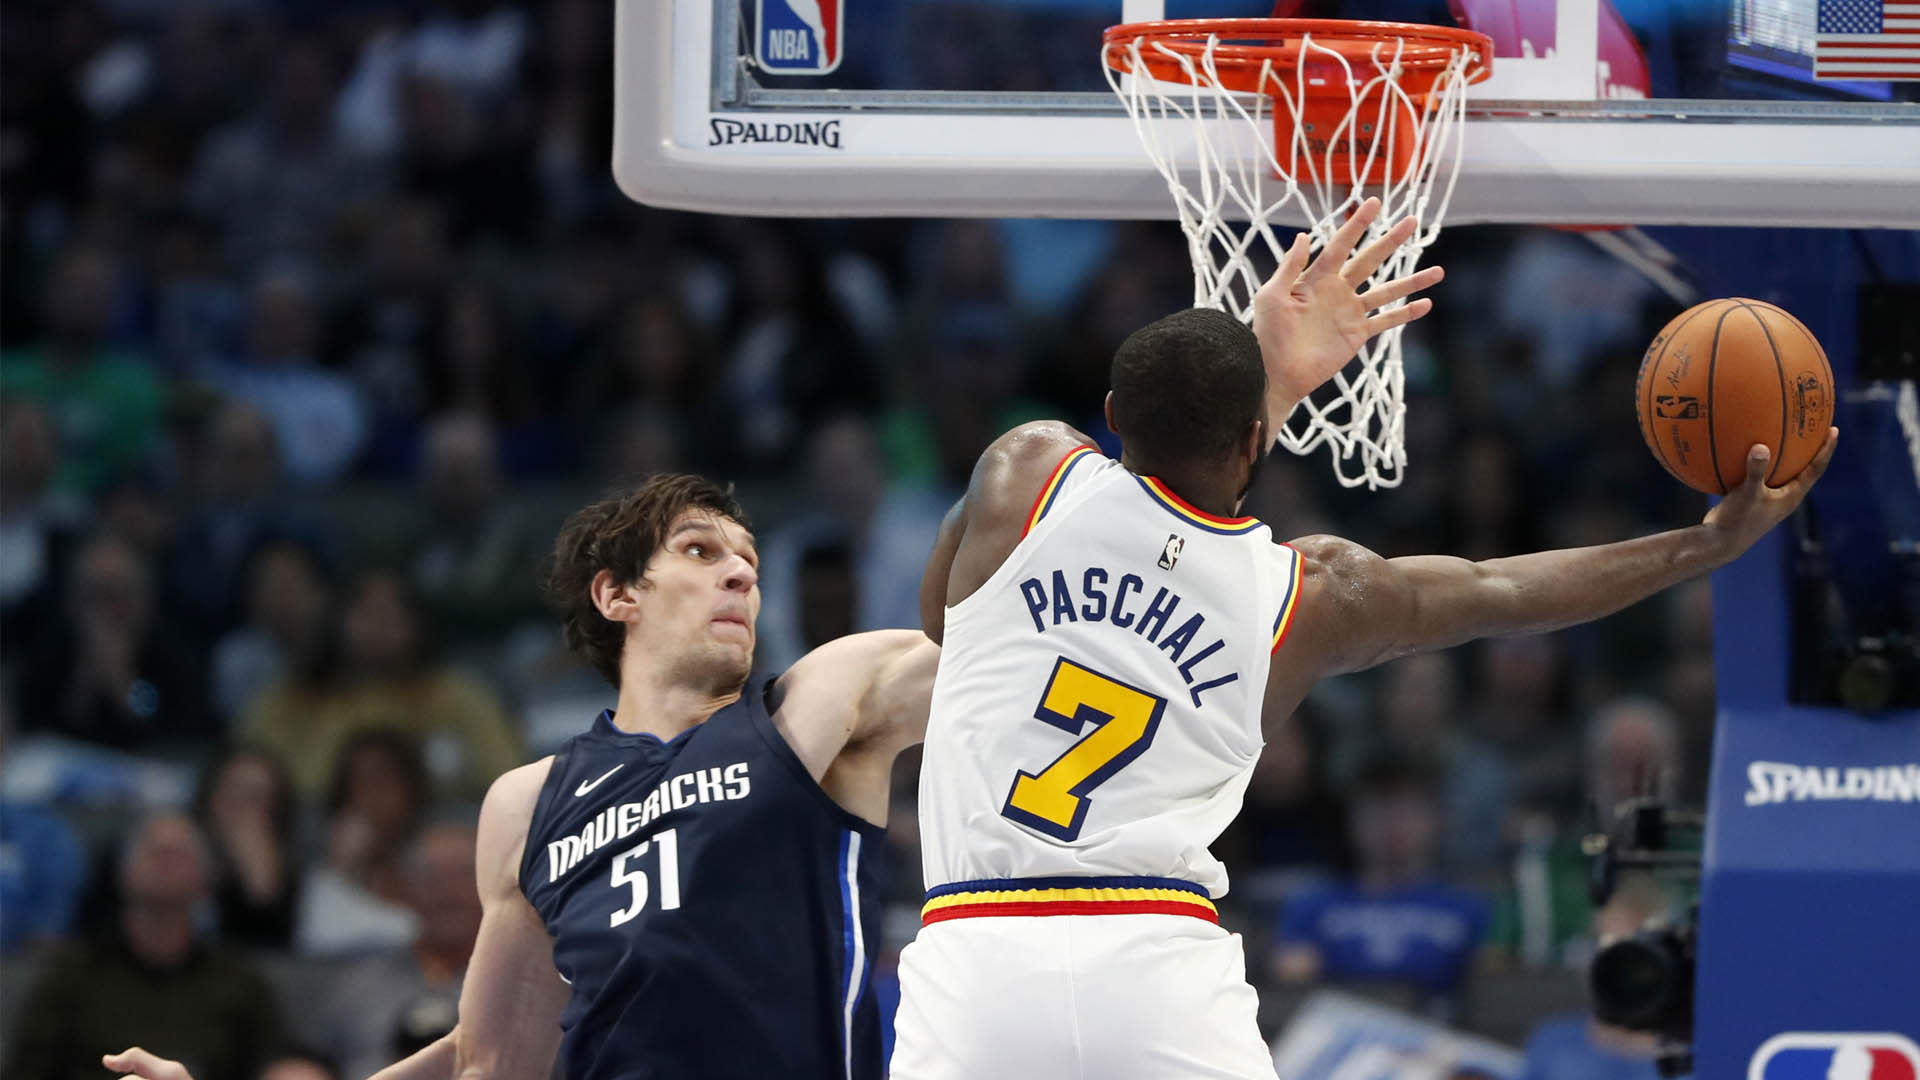 Warriors' Eric Paschall added one item to diet to deal with NBA grind